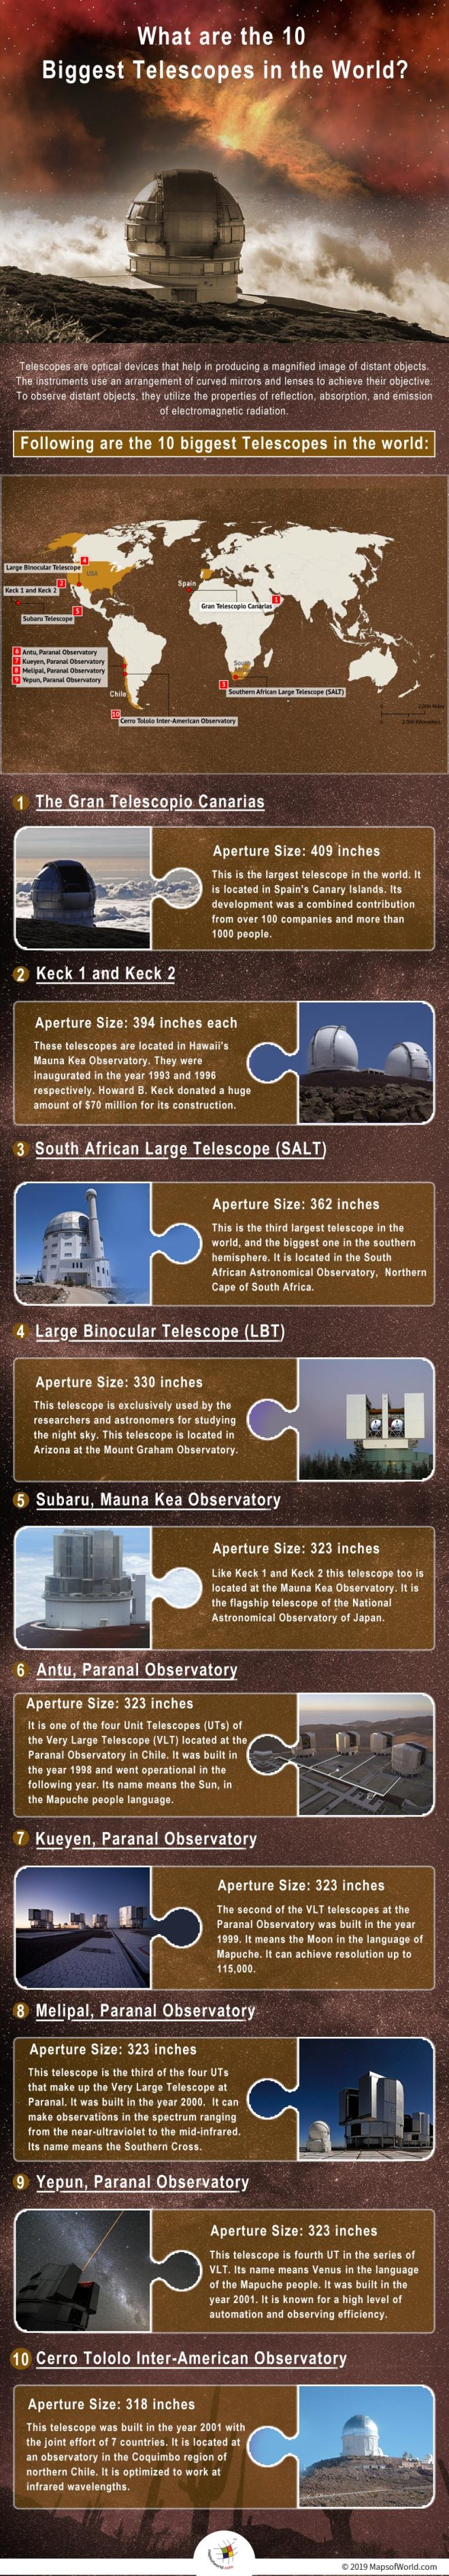 Infographic Giving Details of the 10 Biggest Telescopes in the World